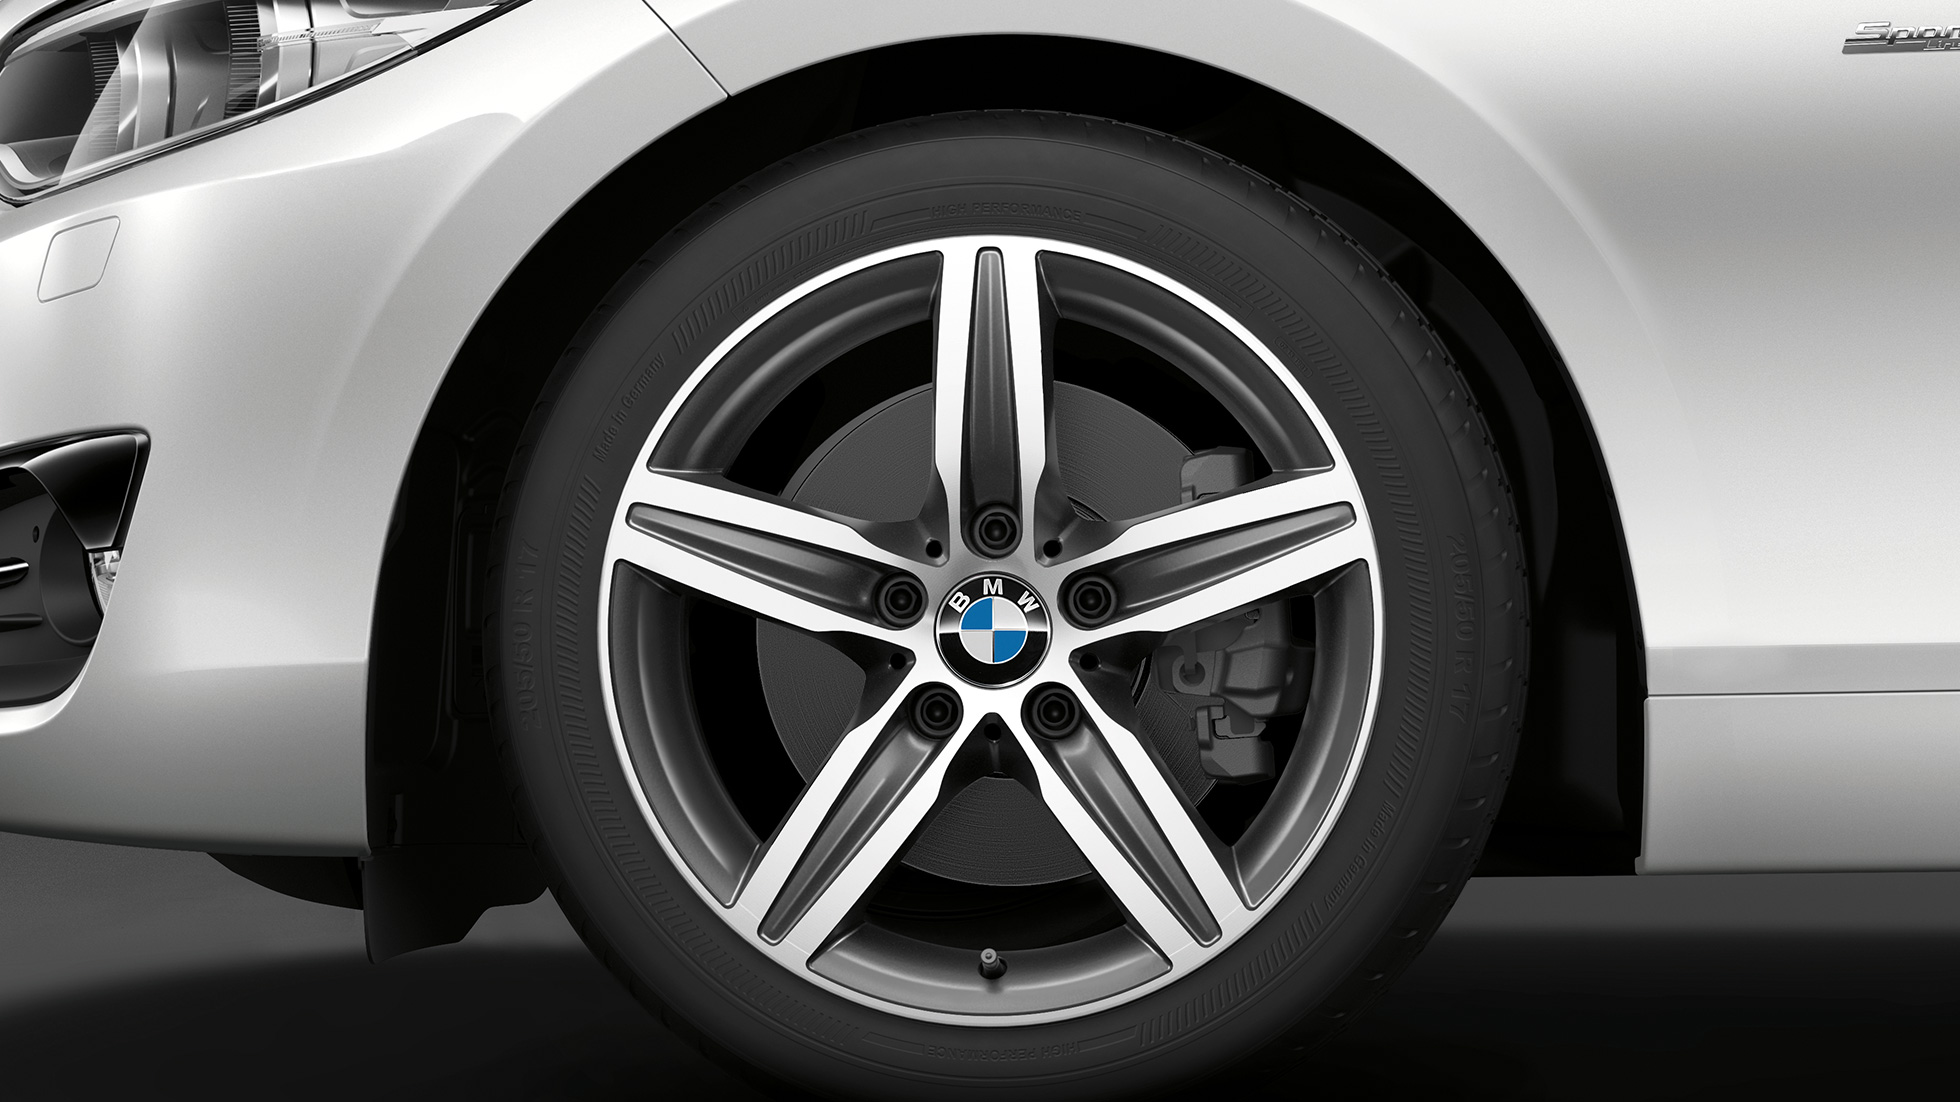 BMW 2 Series Convertible, Model Sport Line wheels